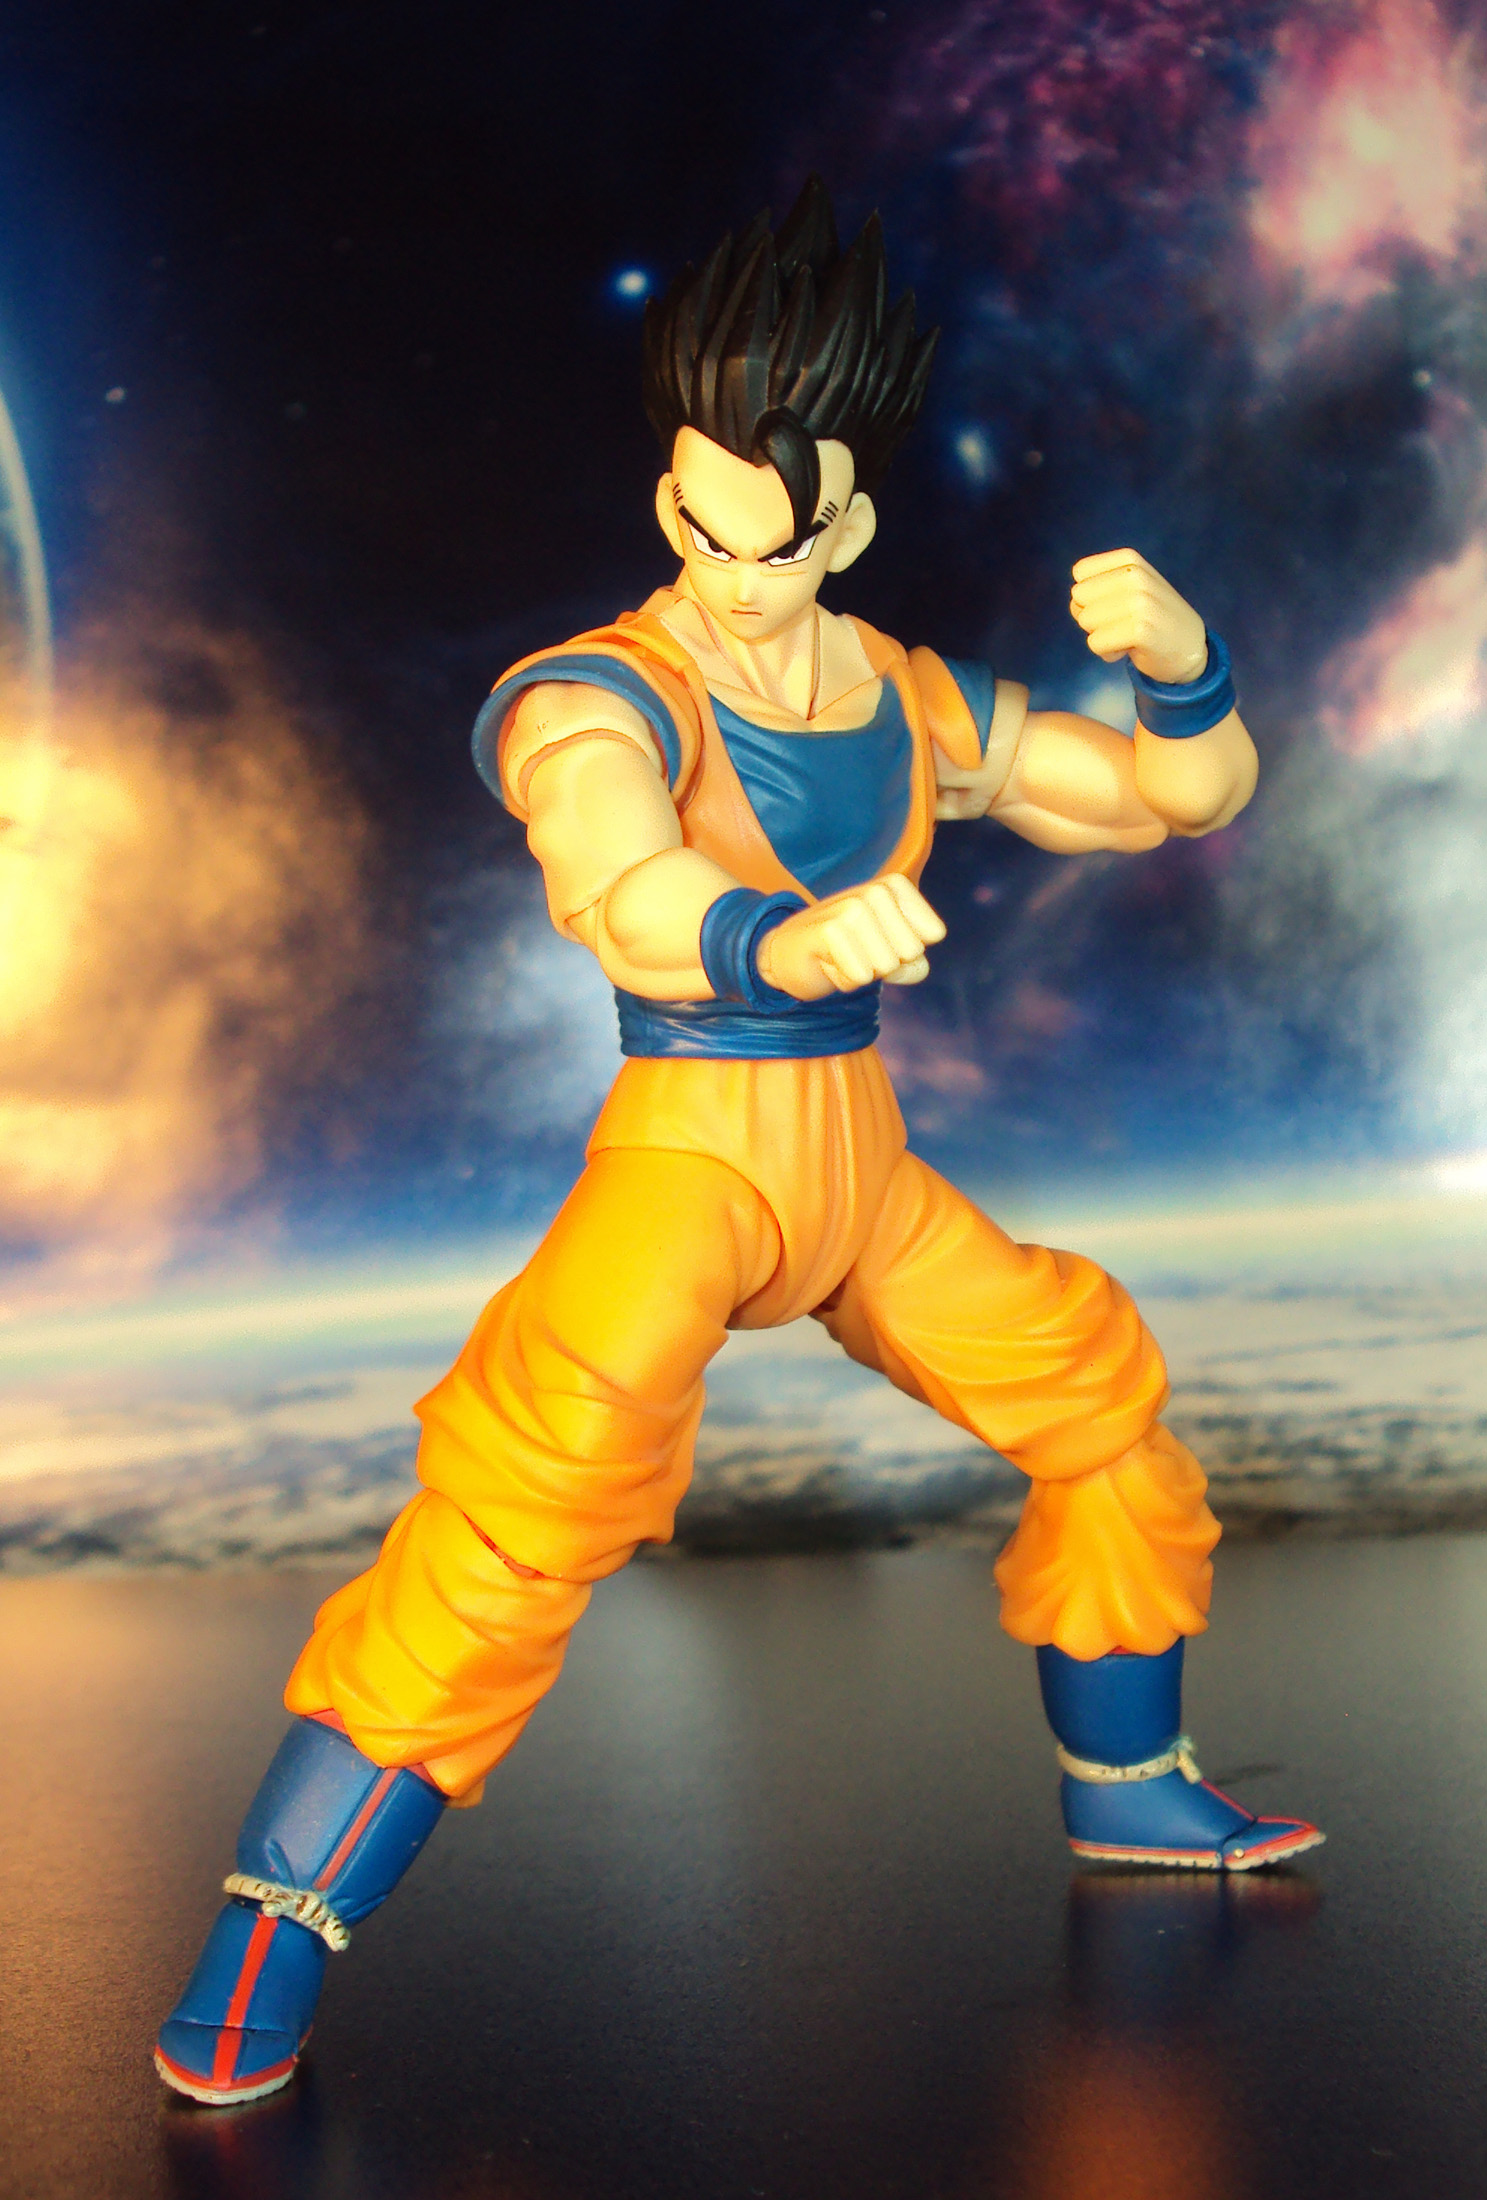 Ultimate welcome to hdtoytheater - Photo dragon ball z ...